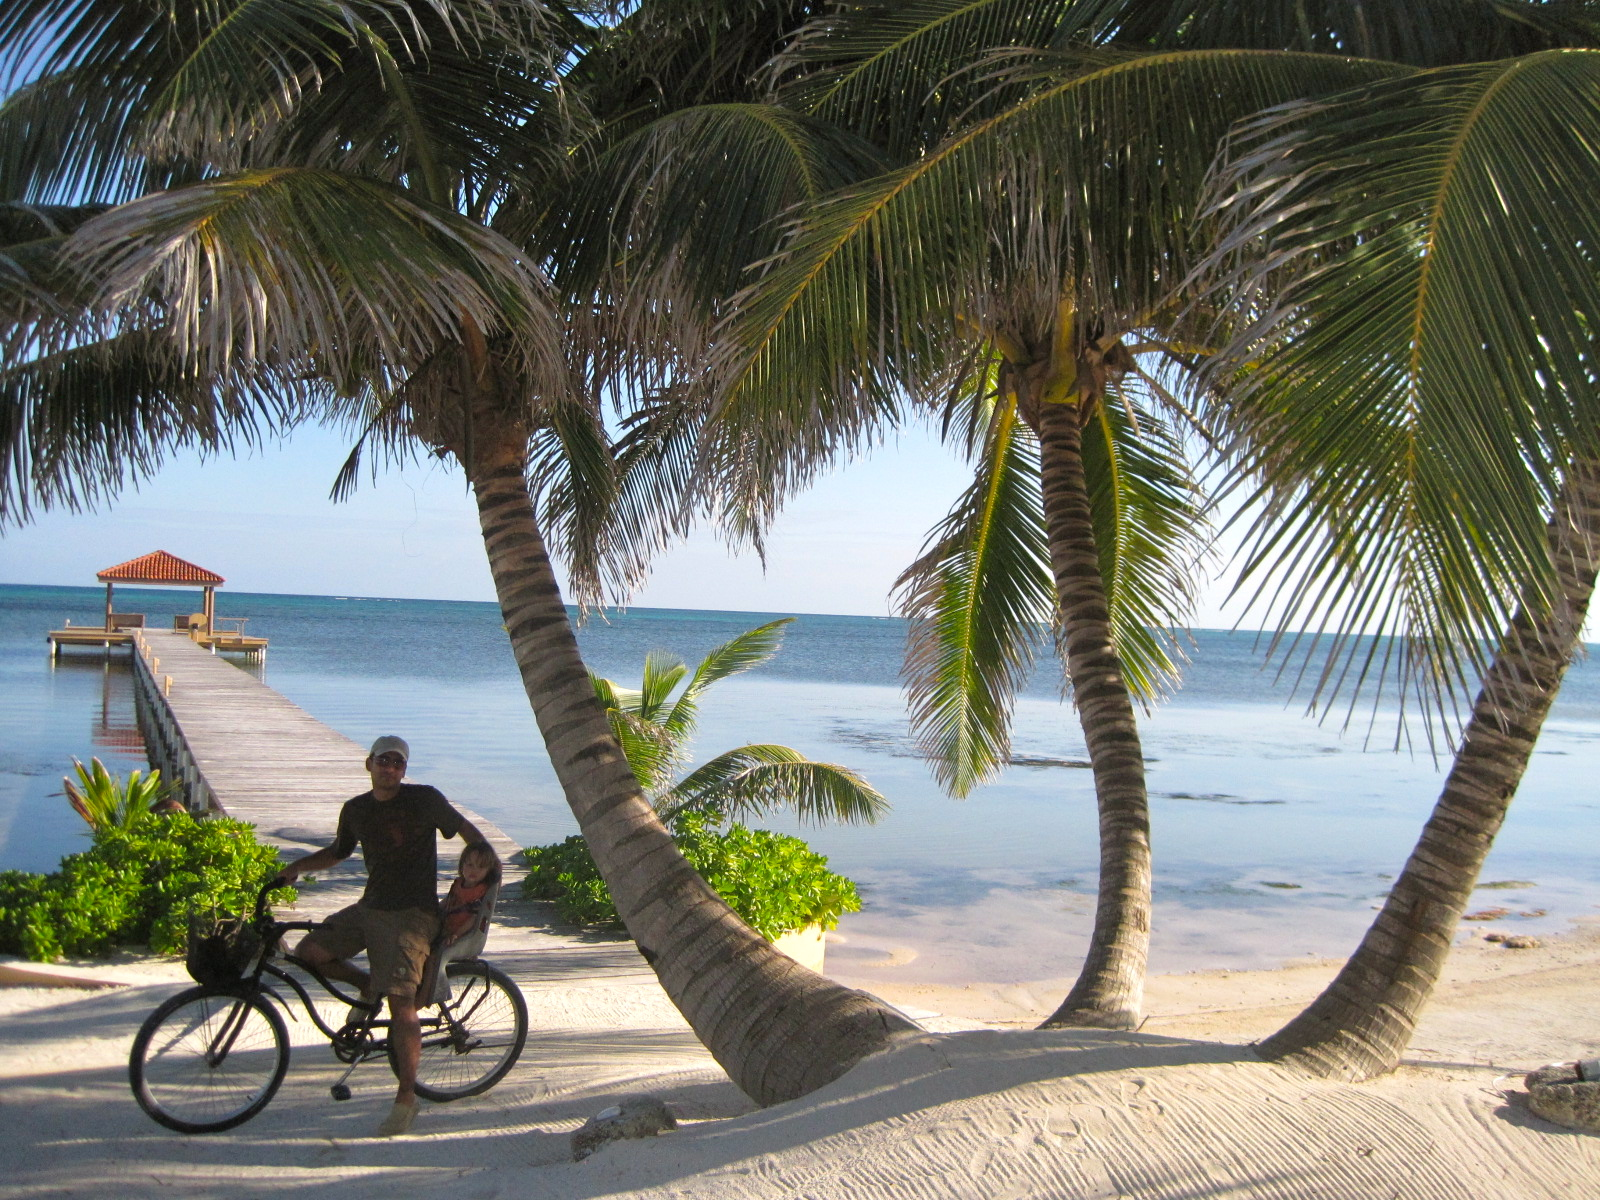 Best Beaches in Central America for Families: Biking with Kids along the beach of Ambergris Caye, Belize